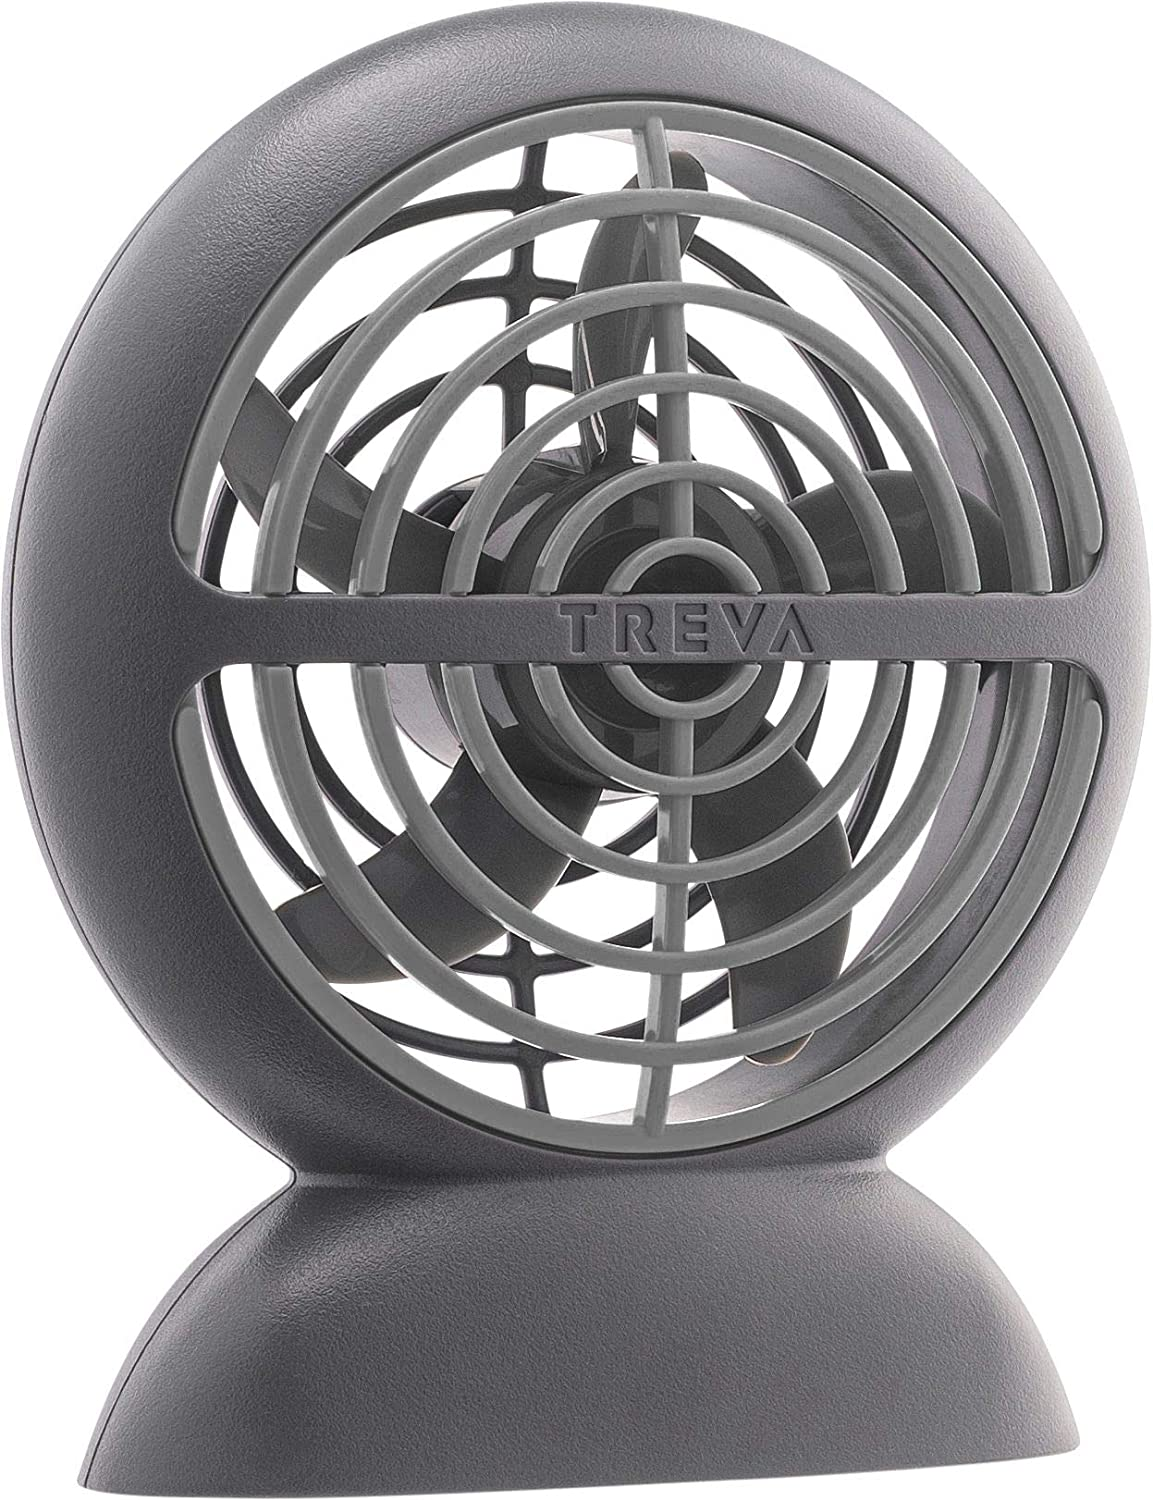 Treva Rechargeable Battery Small Fan - 3.5 Inch Blade USB Charging Port Fan - 3 Speed Circular Cooling Design - Portable Handheld or Personal Desktop Size - Travel Ready (Grey, 1)